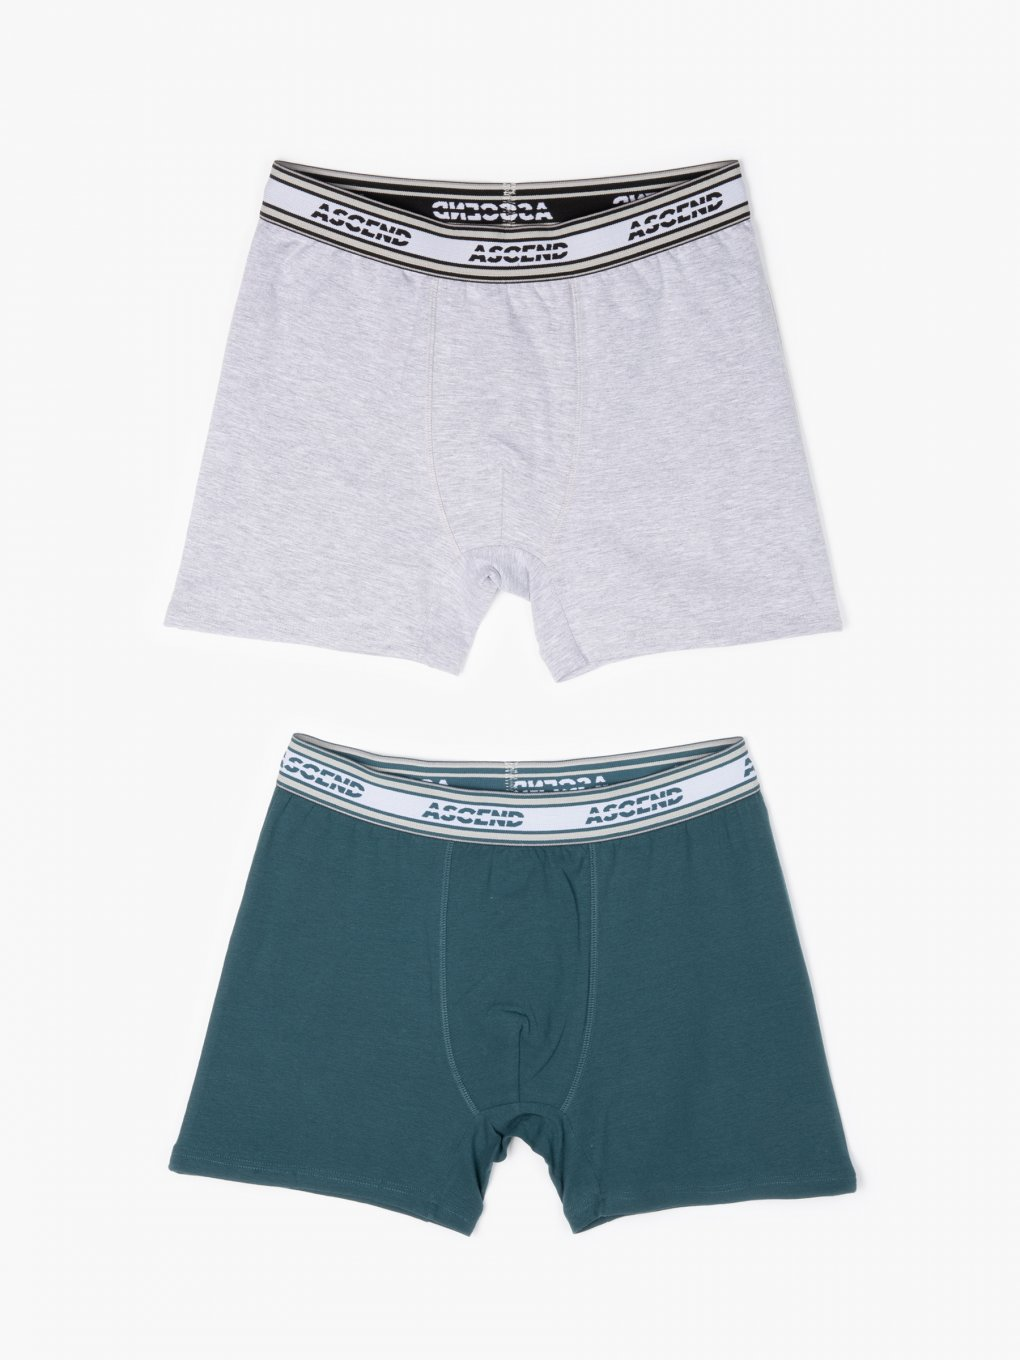 2-pack basic boxers